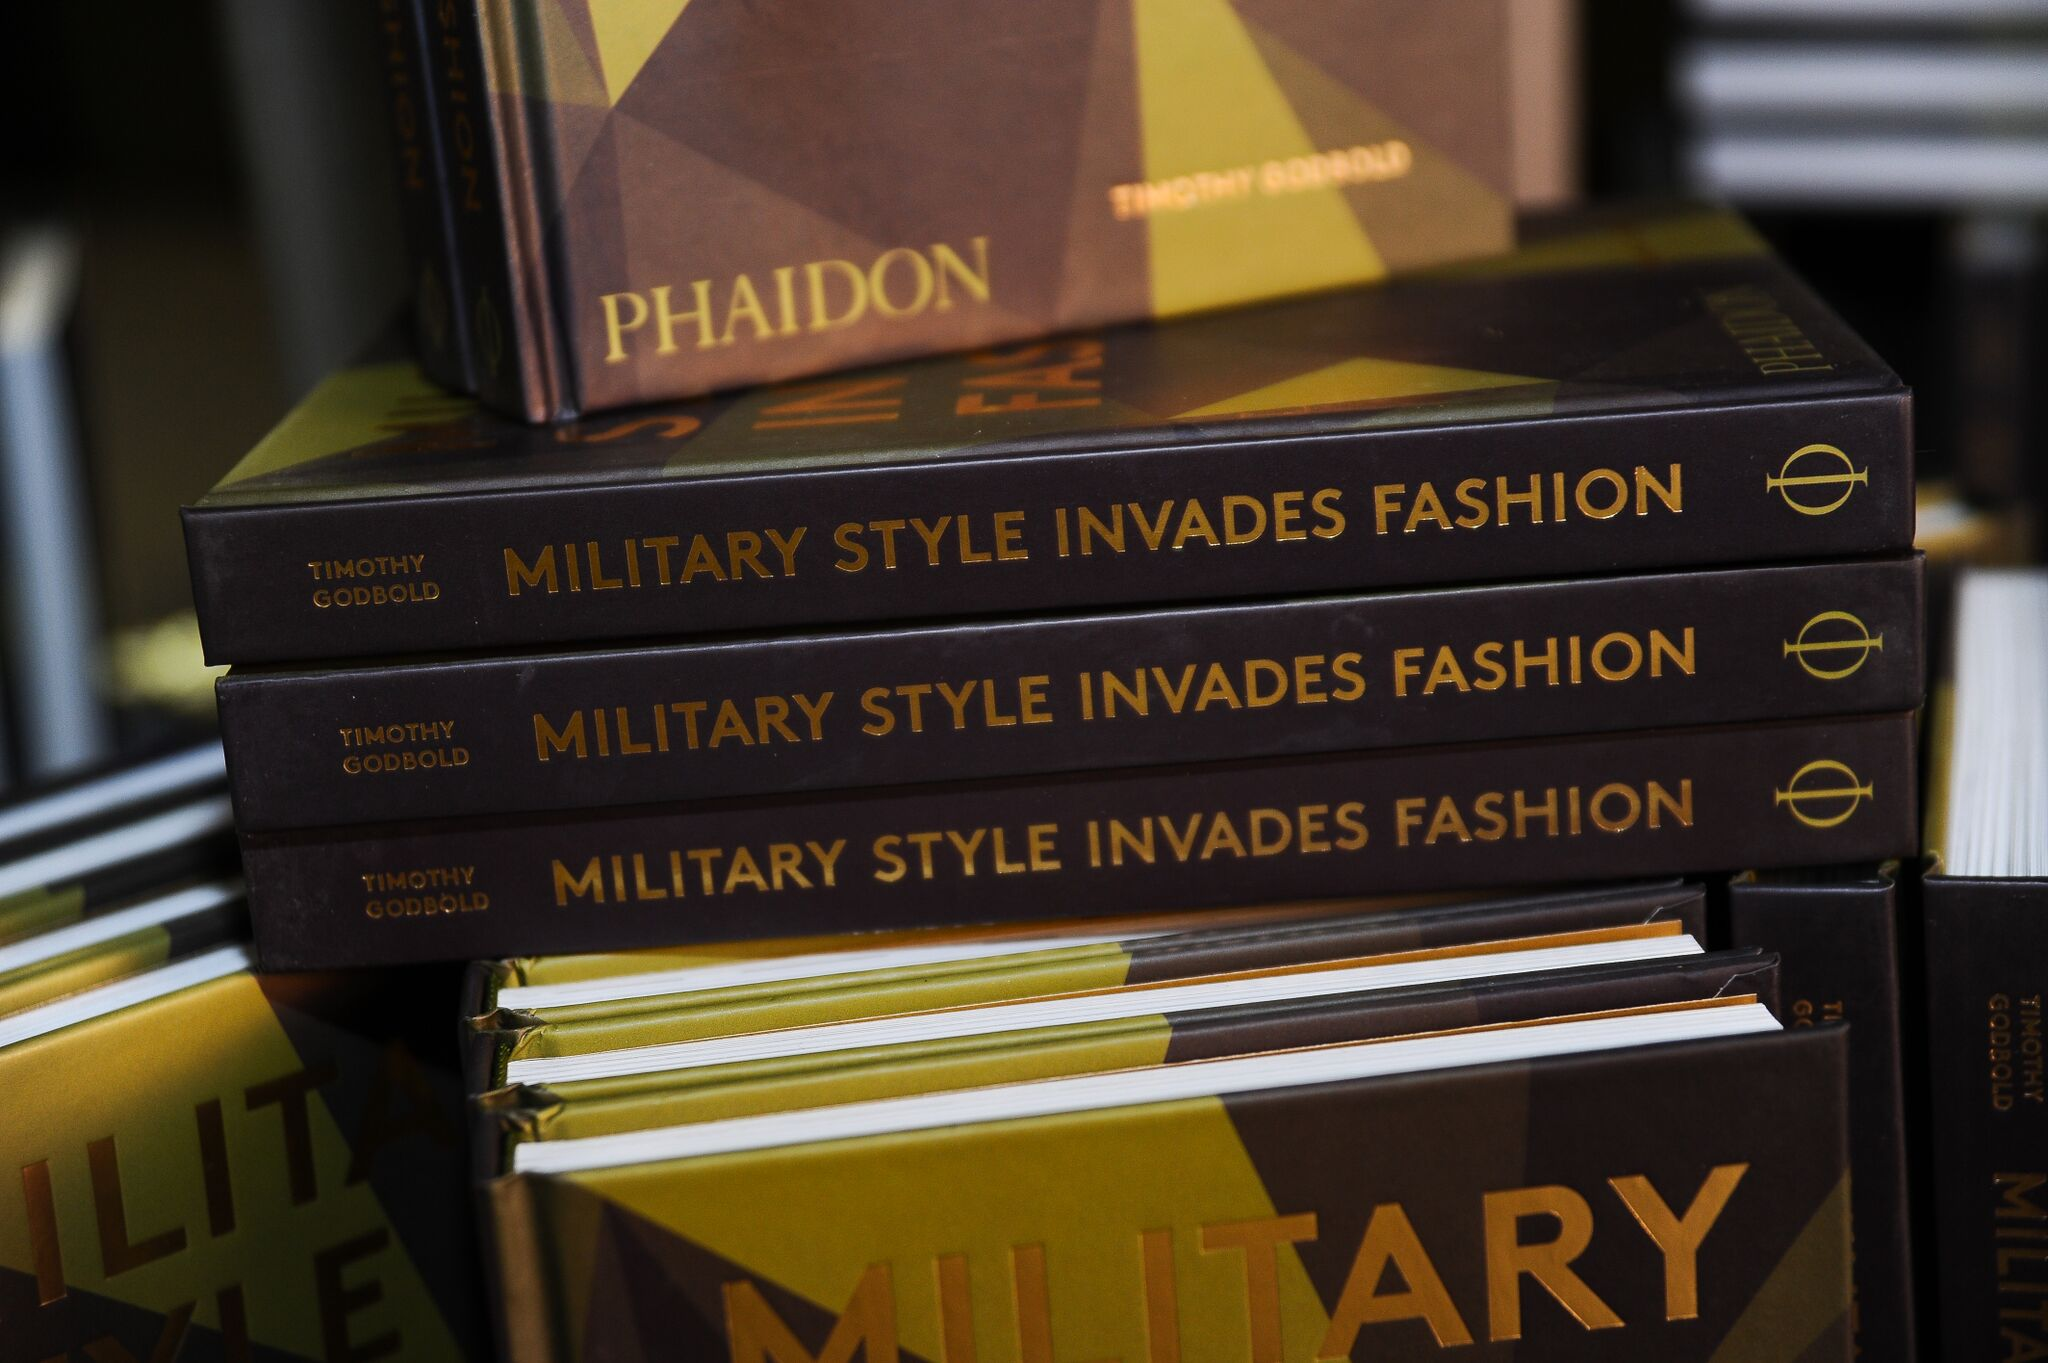 Timothy Godbold - Military Style Invades Fashion - Phaidon Press56.jpg